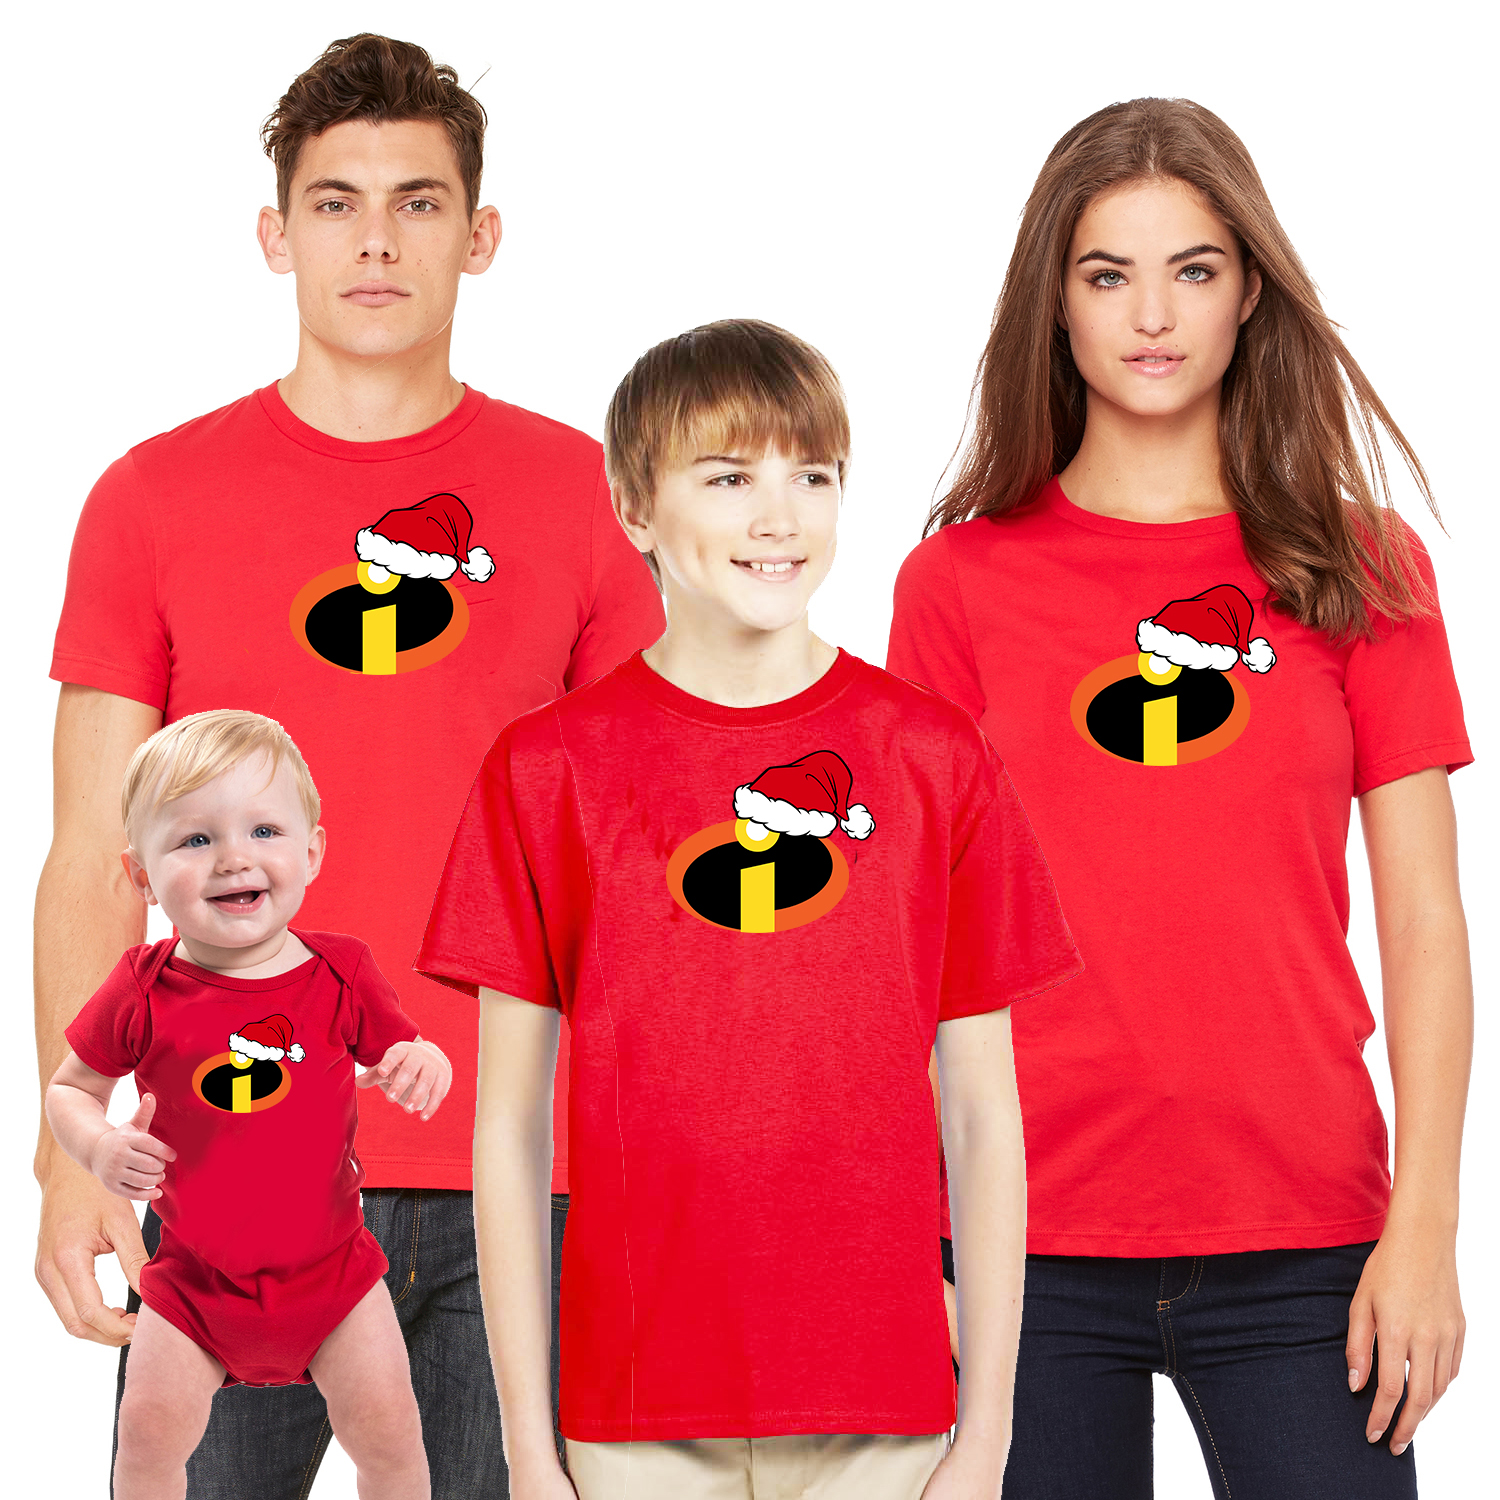 The Incredibles Christmas T-shirt Mens Womens Family Matching (Sold Separately)